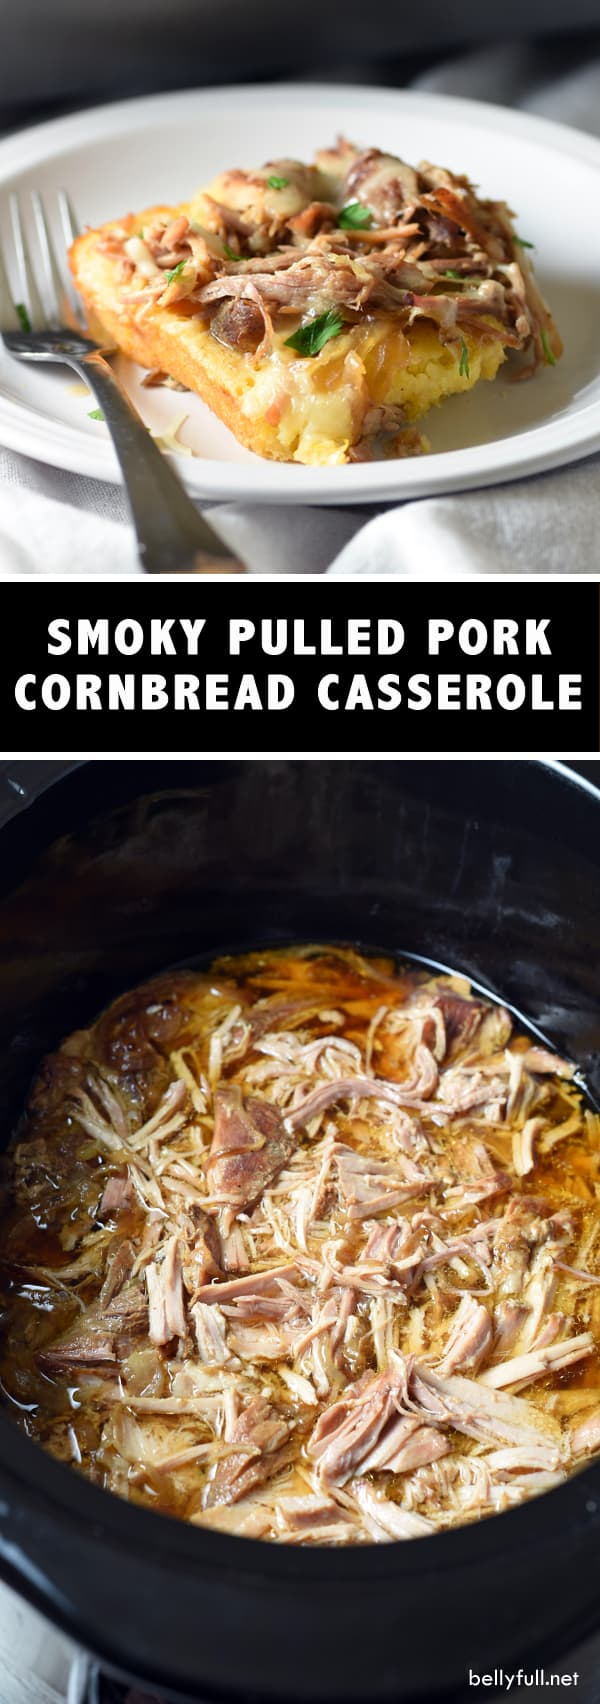 Sweet & Smoky Pulled Pork Cornbread Casserole - seasoned pork roast is slow cooked, then baked on top of savory cornbread and topped wth melted cheese to perfection! #RealFlavorRealFast